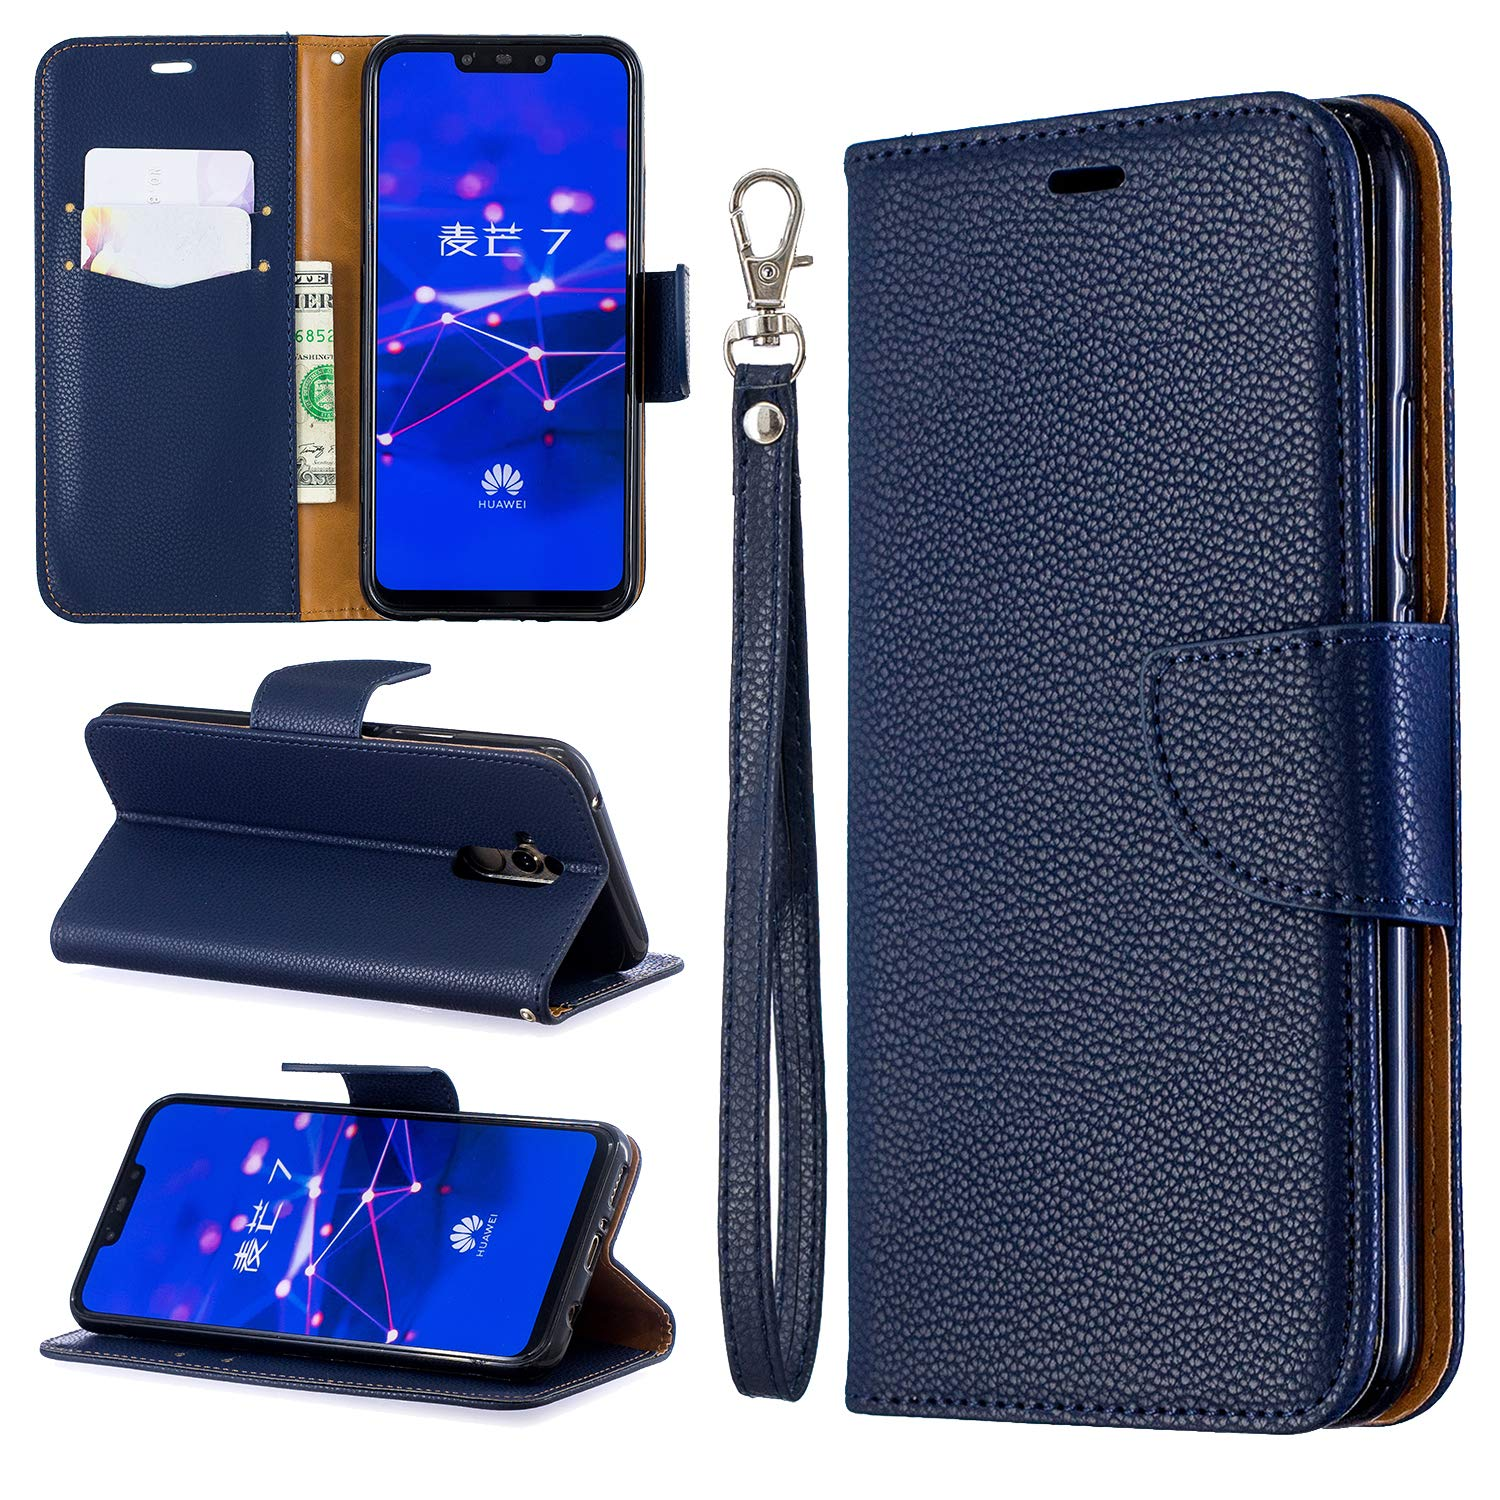 Jinghuash Premium Leather Case Compatible with Huawei Mate 20 Lite,Leather Wallet Case with Viewing Stand and Card Slots,Stand Case for Huawei Mate 20 Lite,Wireless Charging Support-tiger